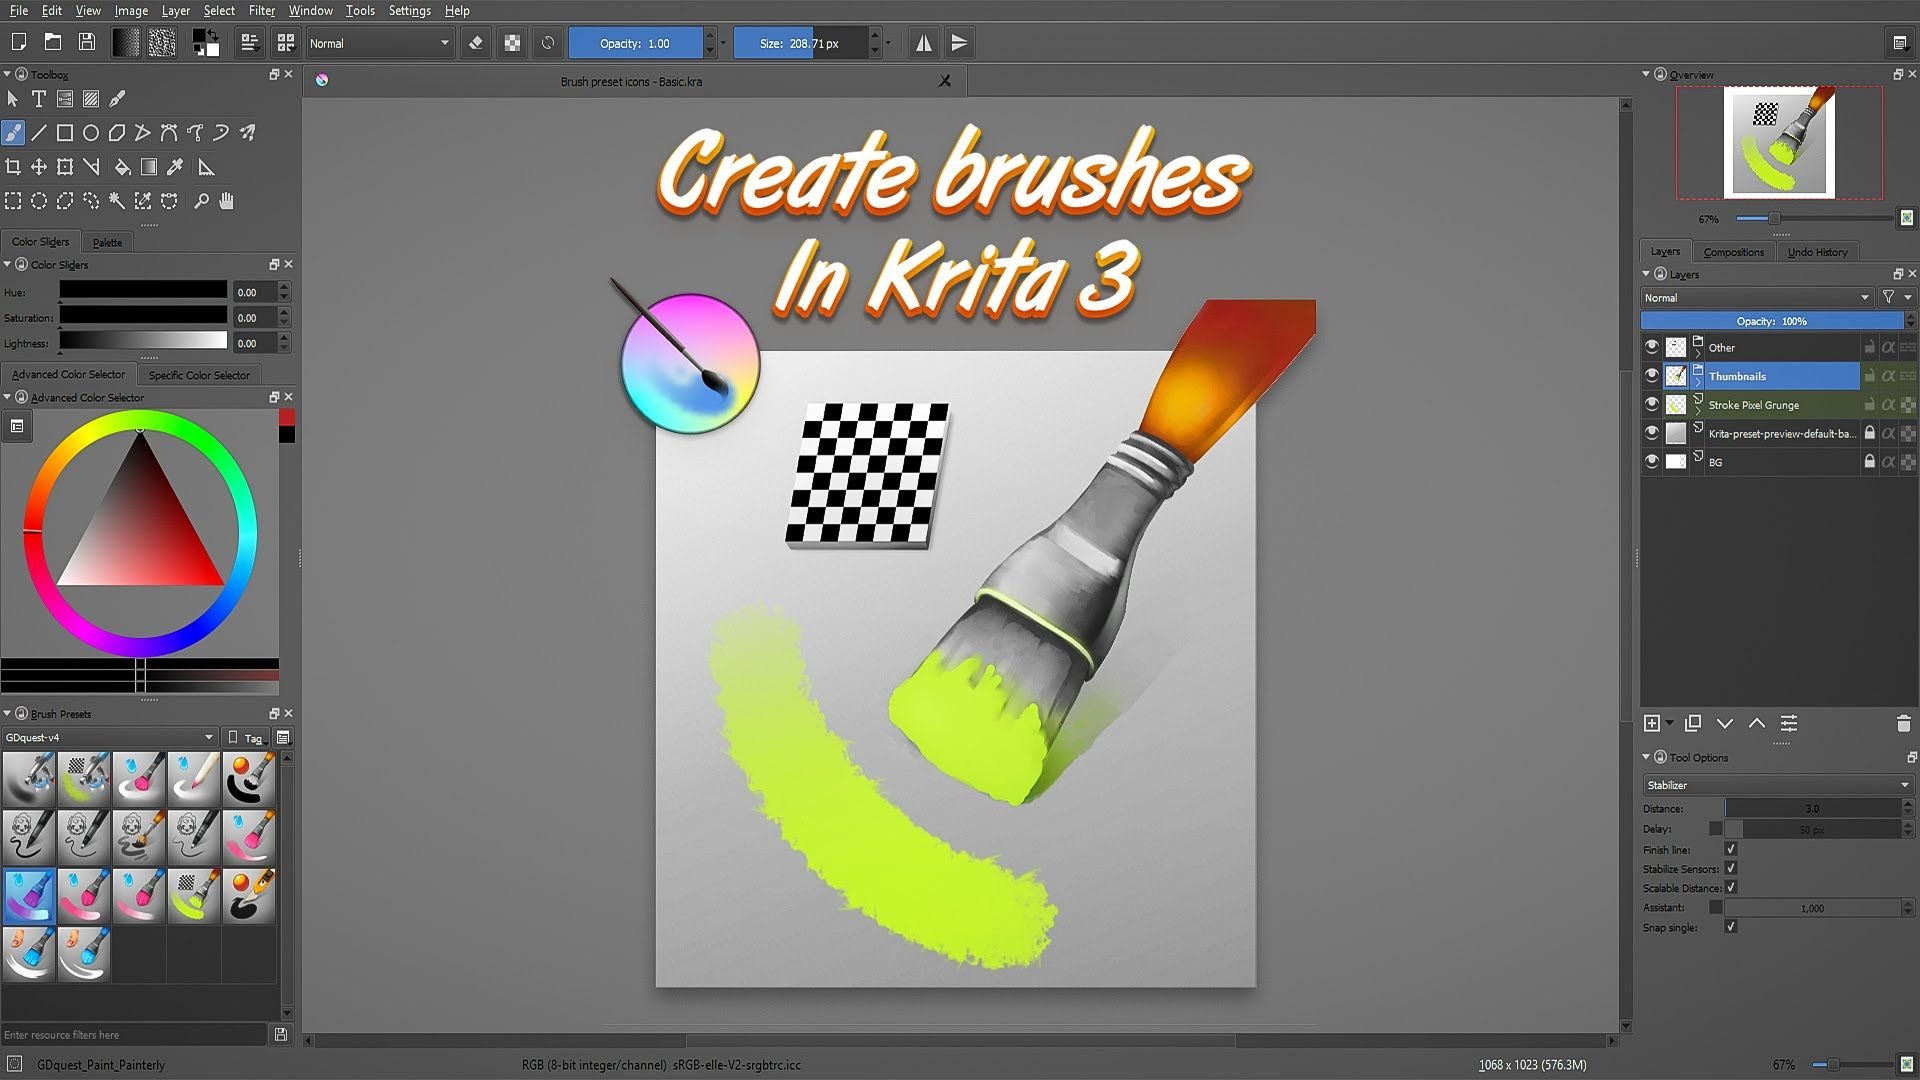 Learn How To Make Your Own Brushes In Krita 3 Krita Tutorial